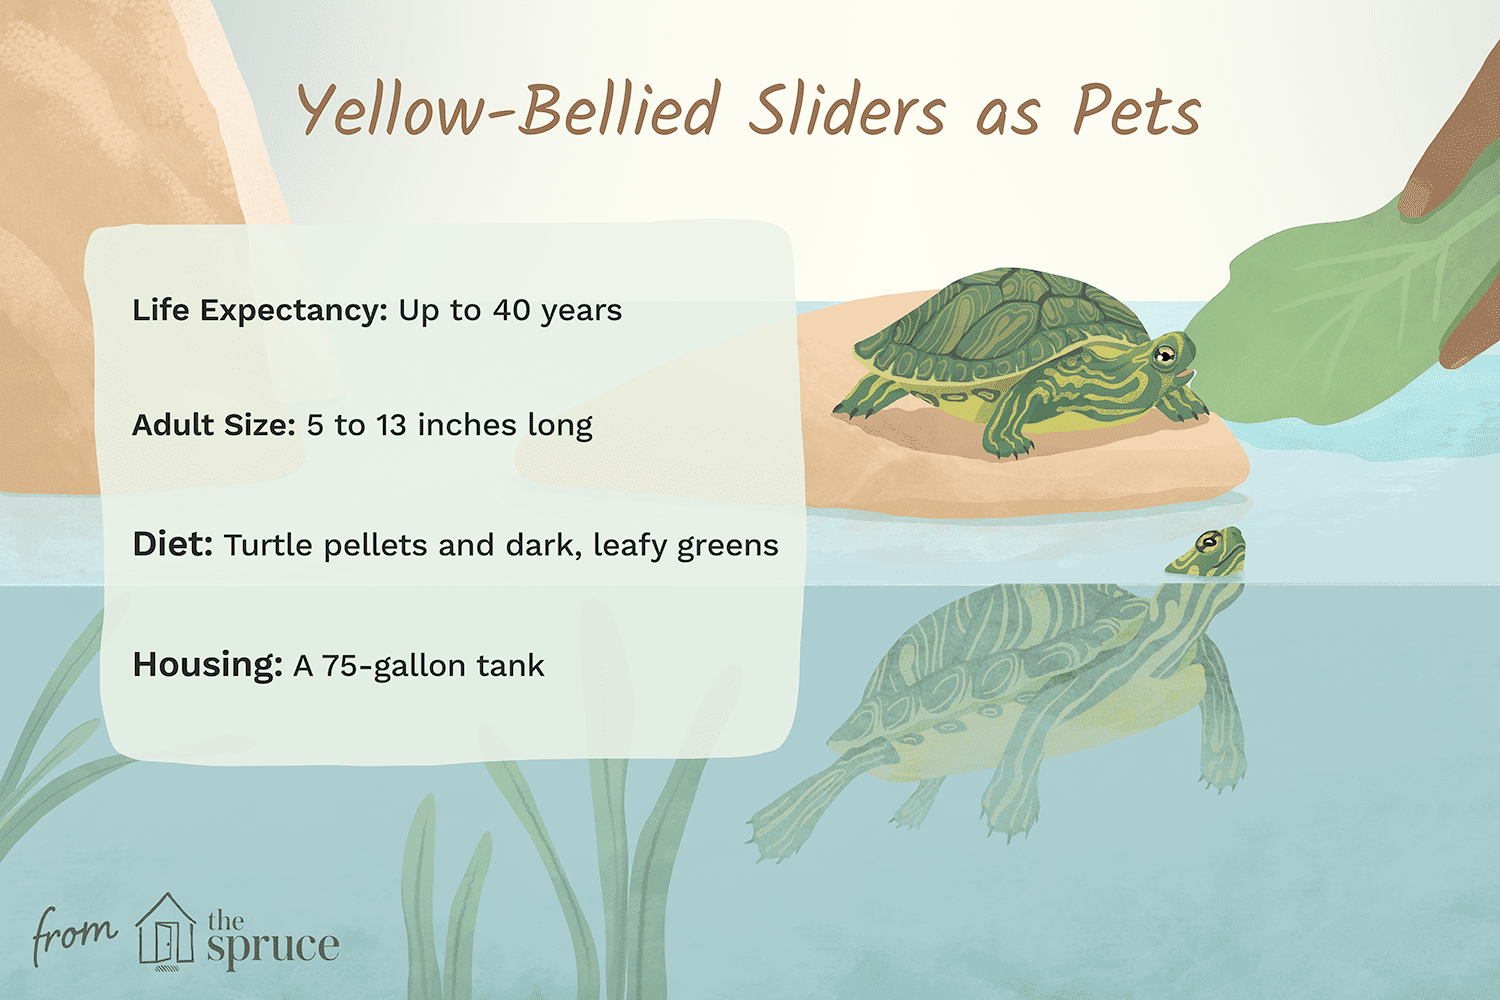 yellow-bellied sliders as pets